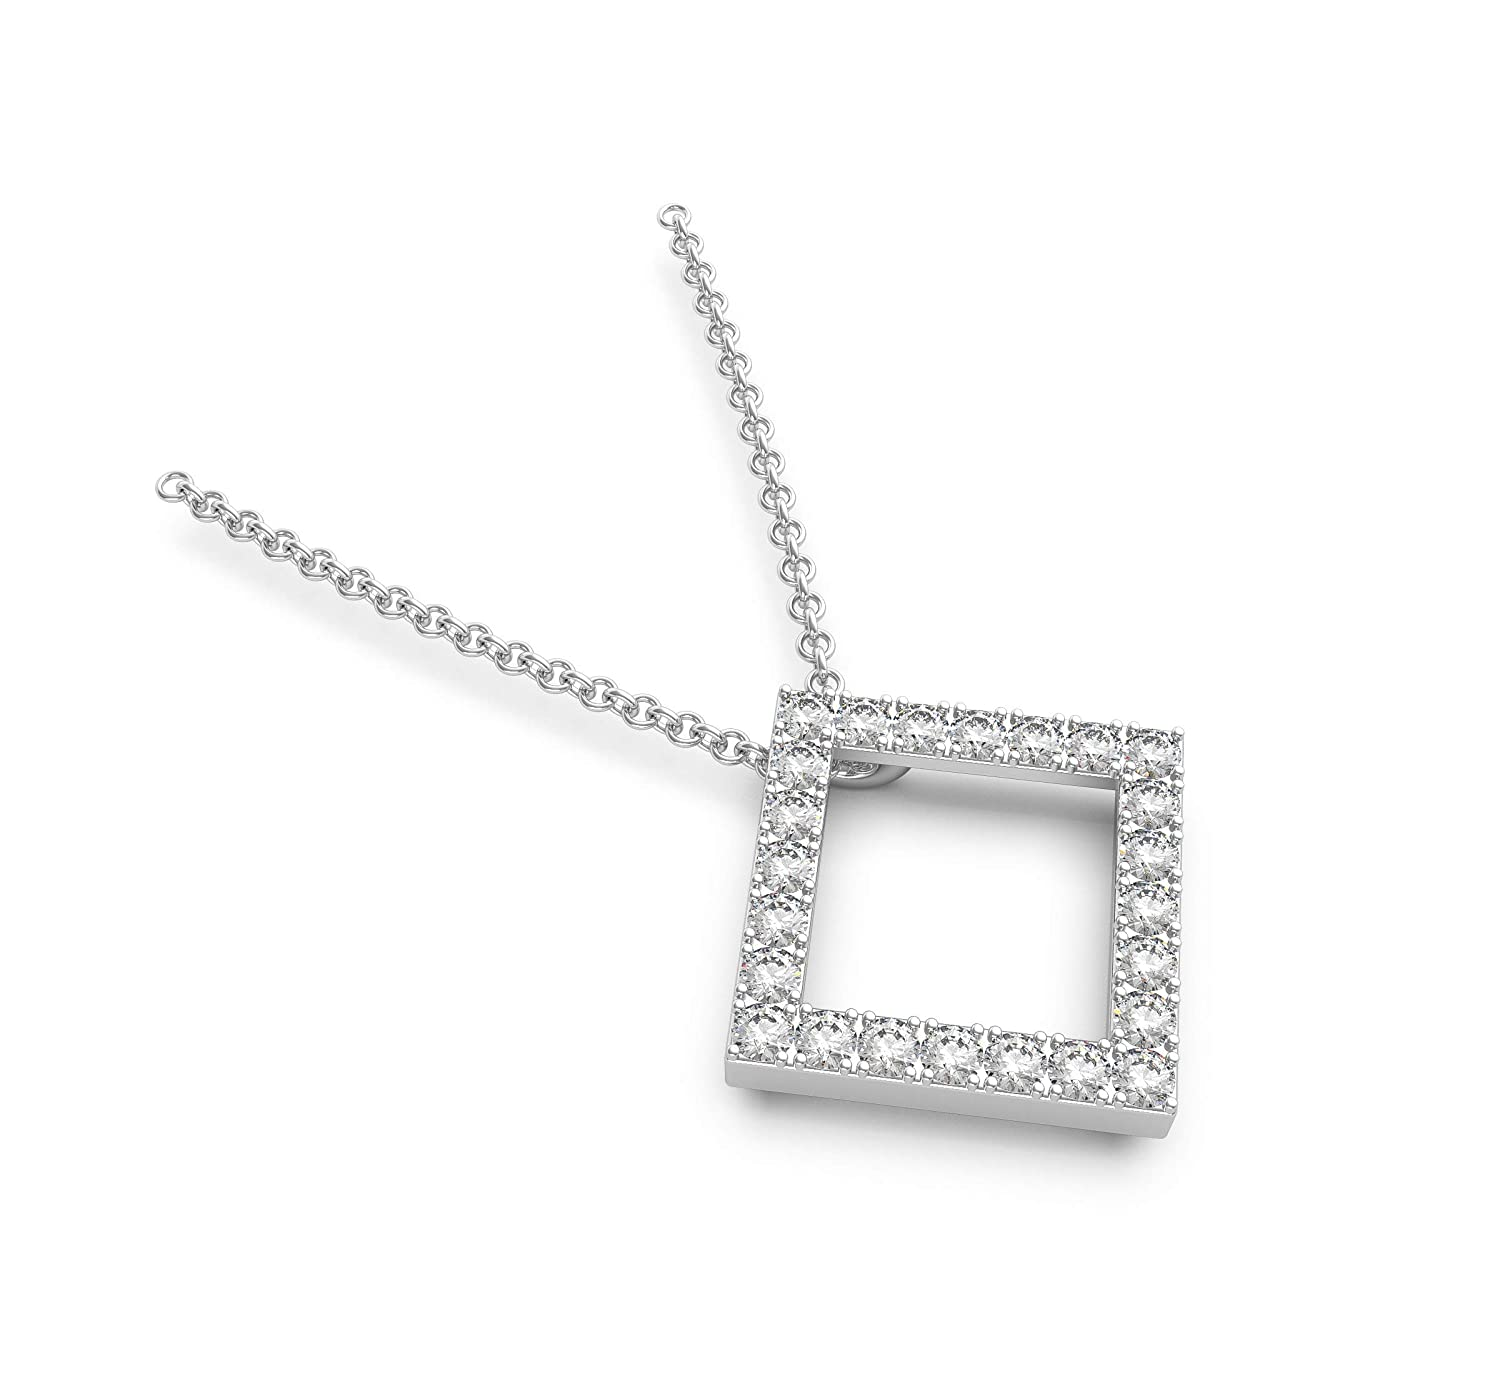 Frostrox Sterling Silver 0.24 Carat Round Cut Open Square Geometric Diamond Pendant